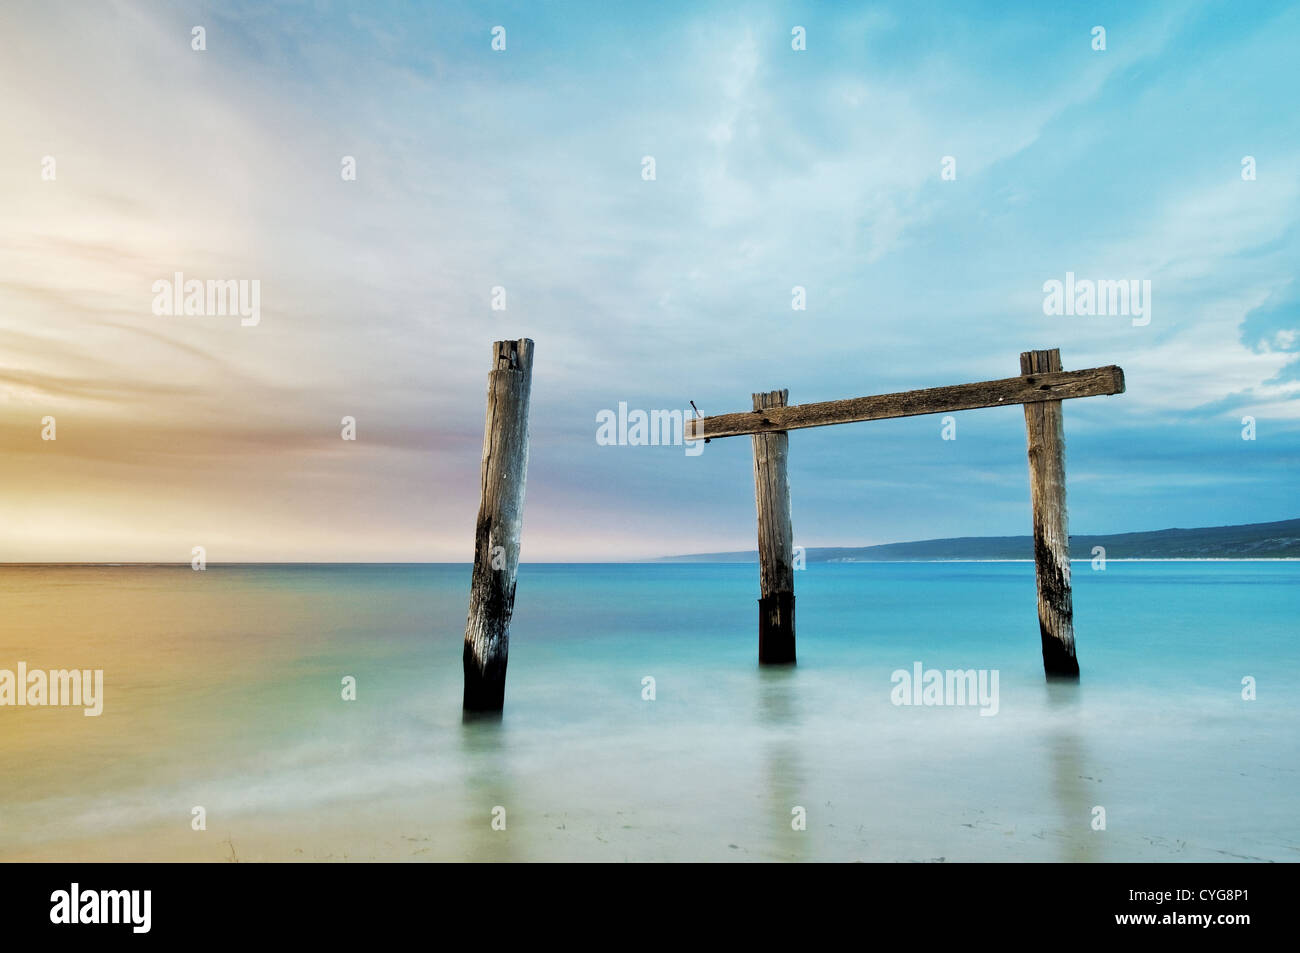 Remains of old jetty in Hamelin Bay. - Stock Image